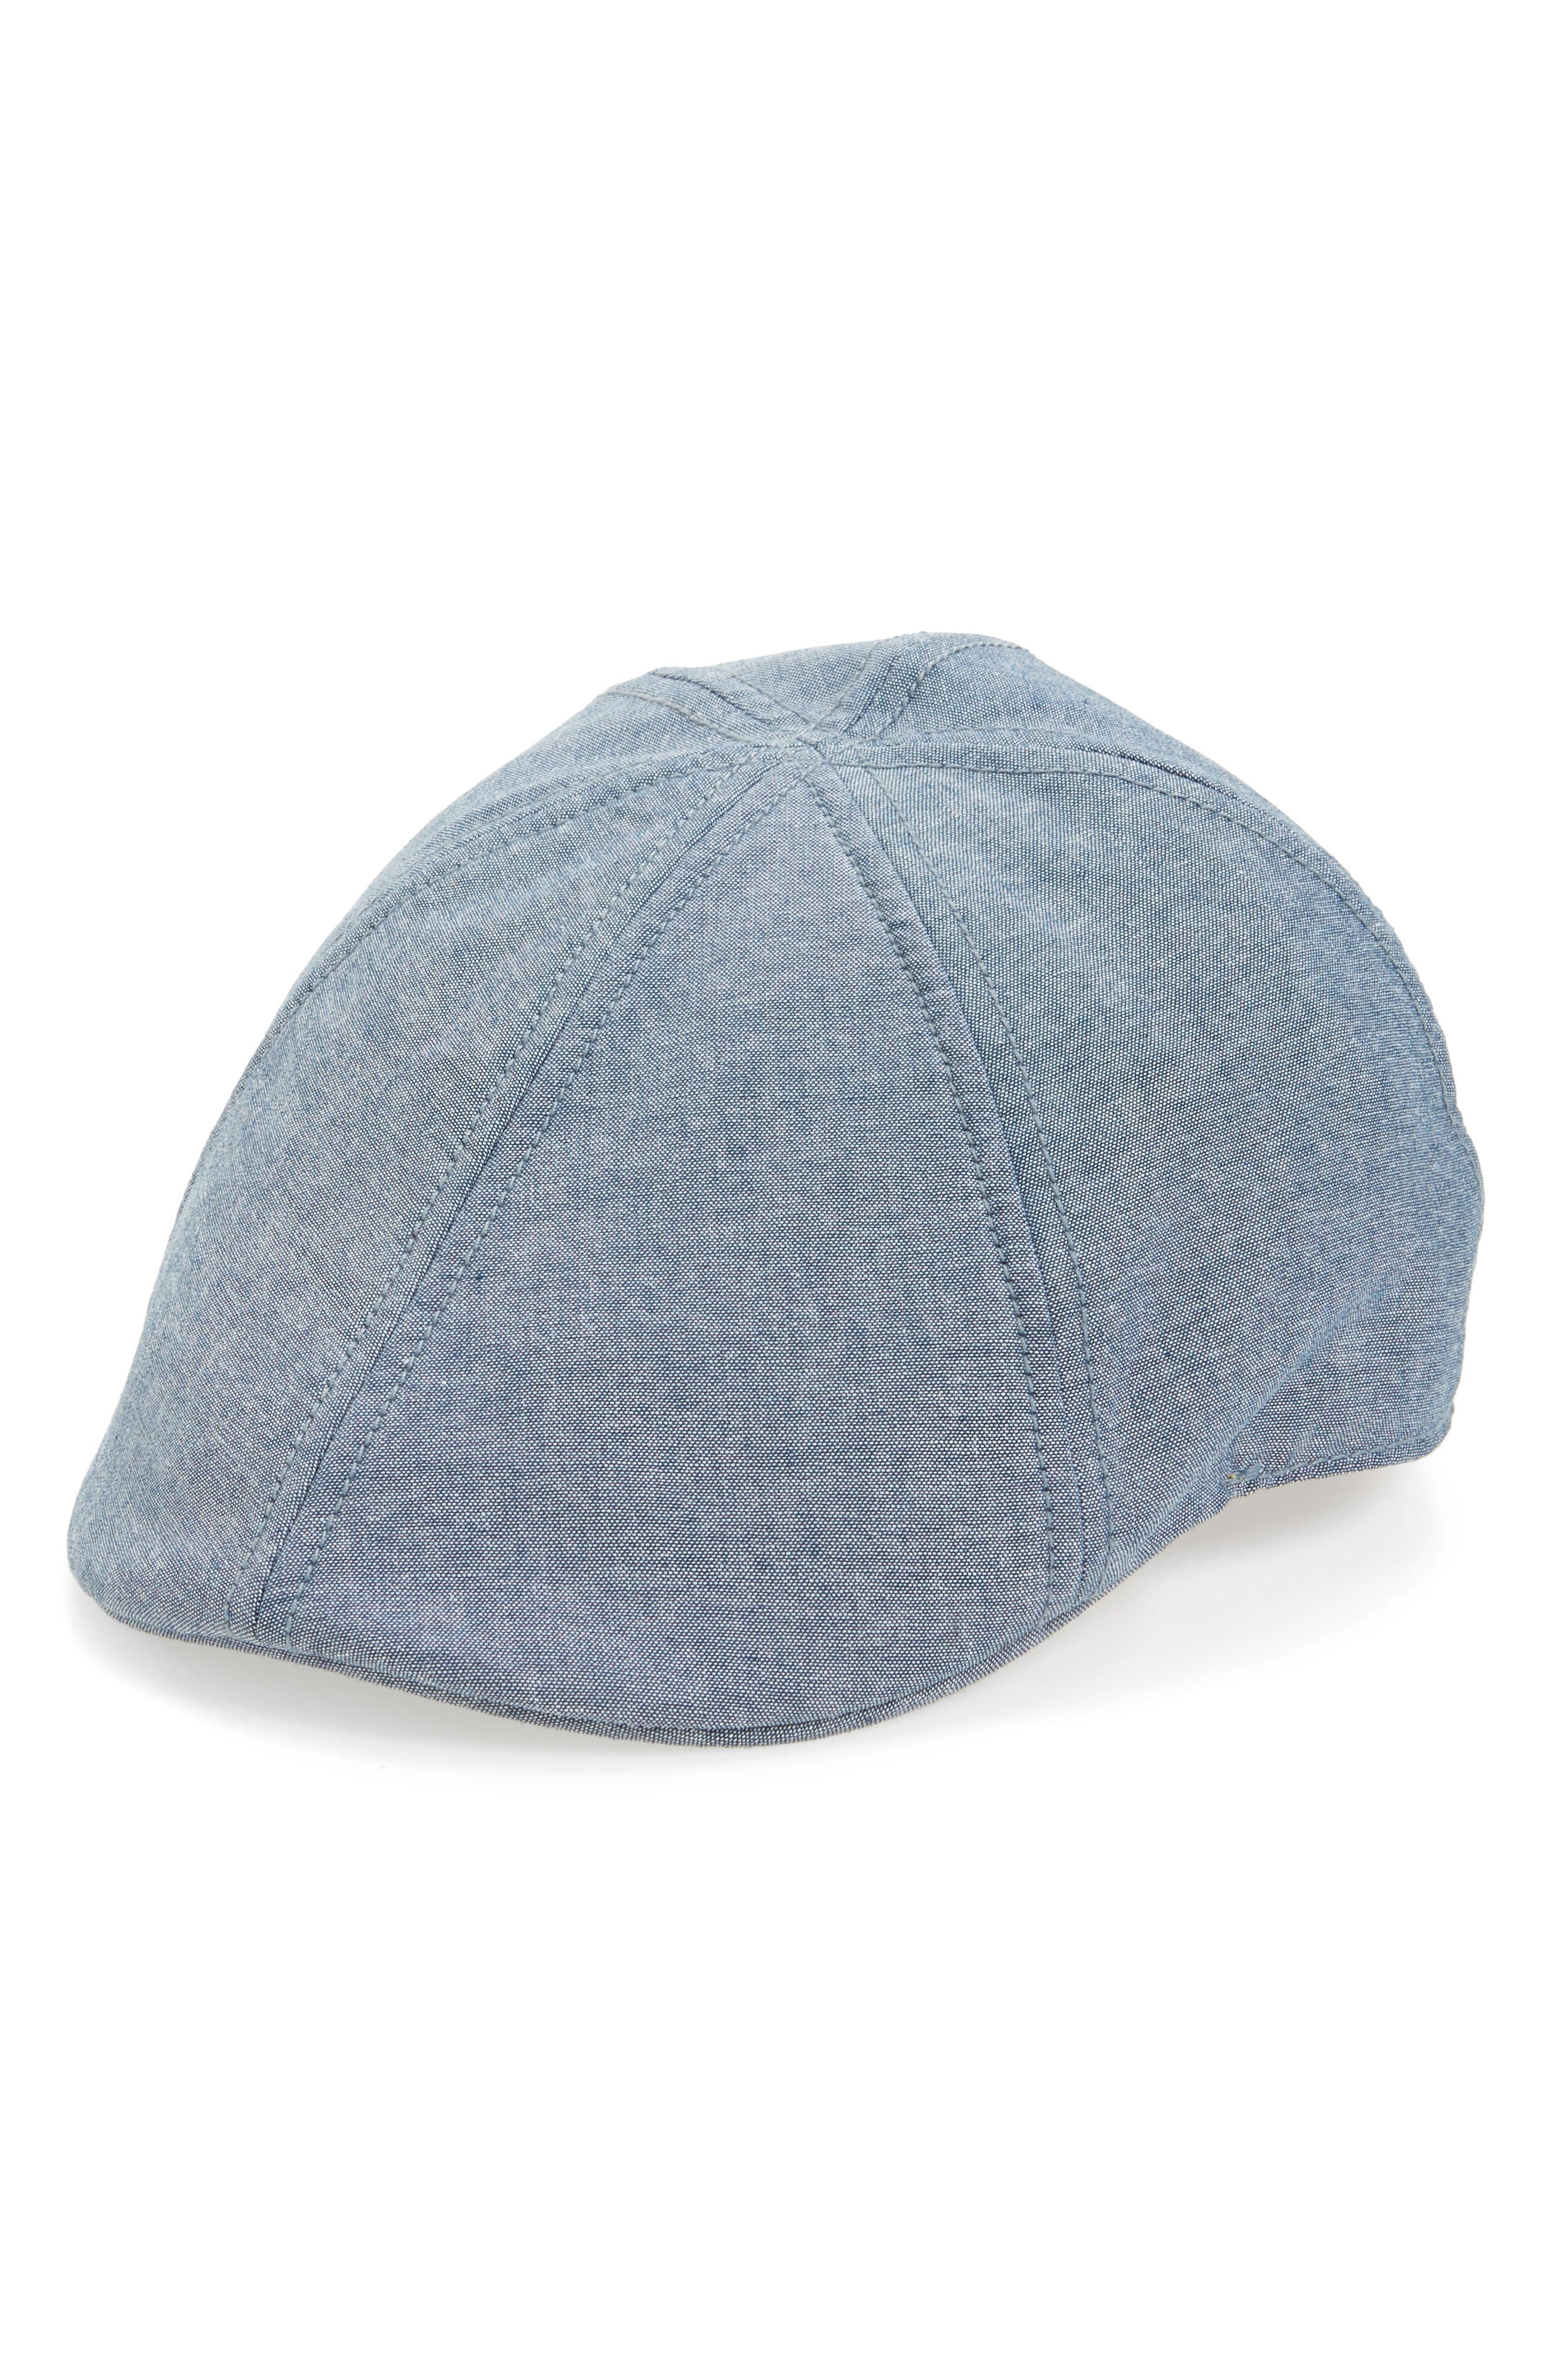 GOORIN BROTHERS Mr. Bang Driver's Hat, Main, color, BLUE